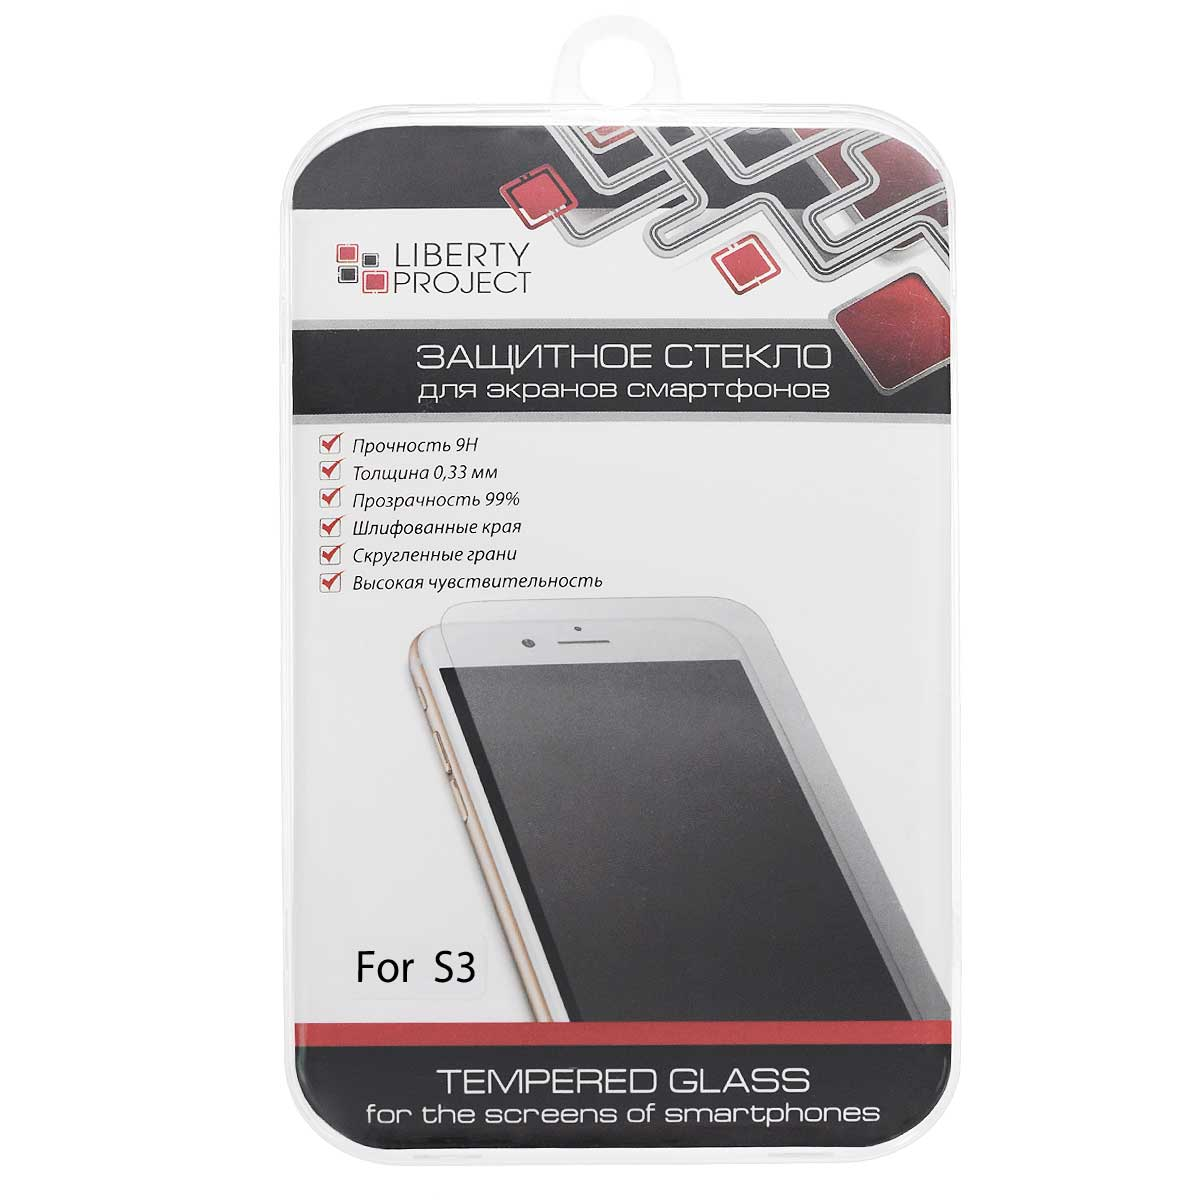 Liberty Project Tempered Glass защитное стекло для Samsung Galaxy S3, Clear (0,33 мм) liberty project tempered glass защитное стекло для htc one m8 clear 0 33 мм